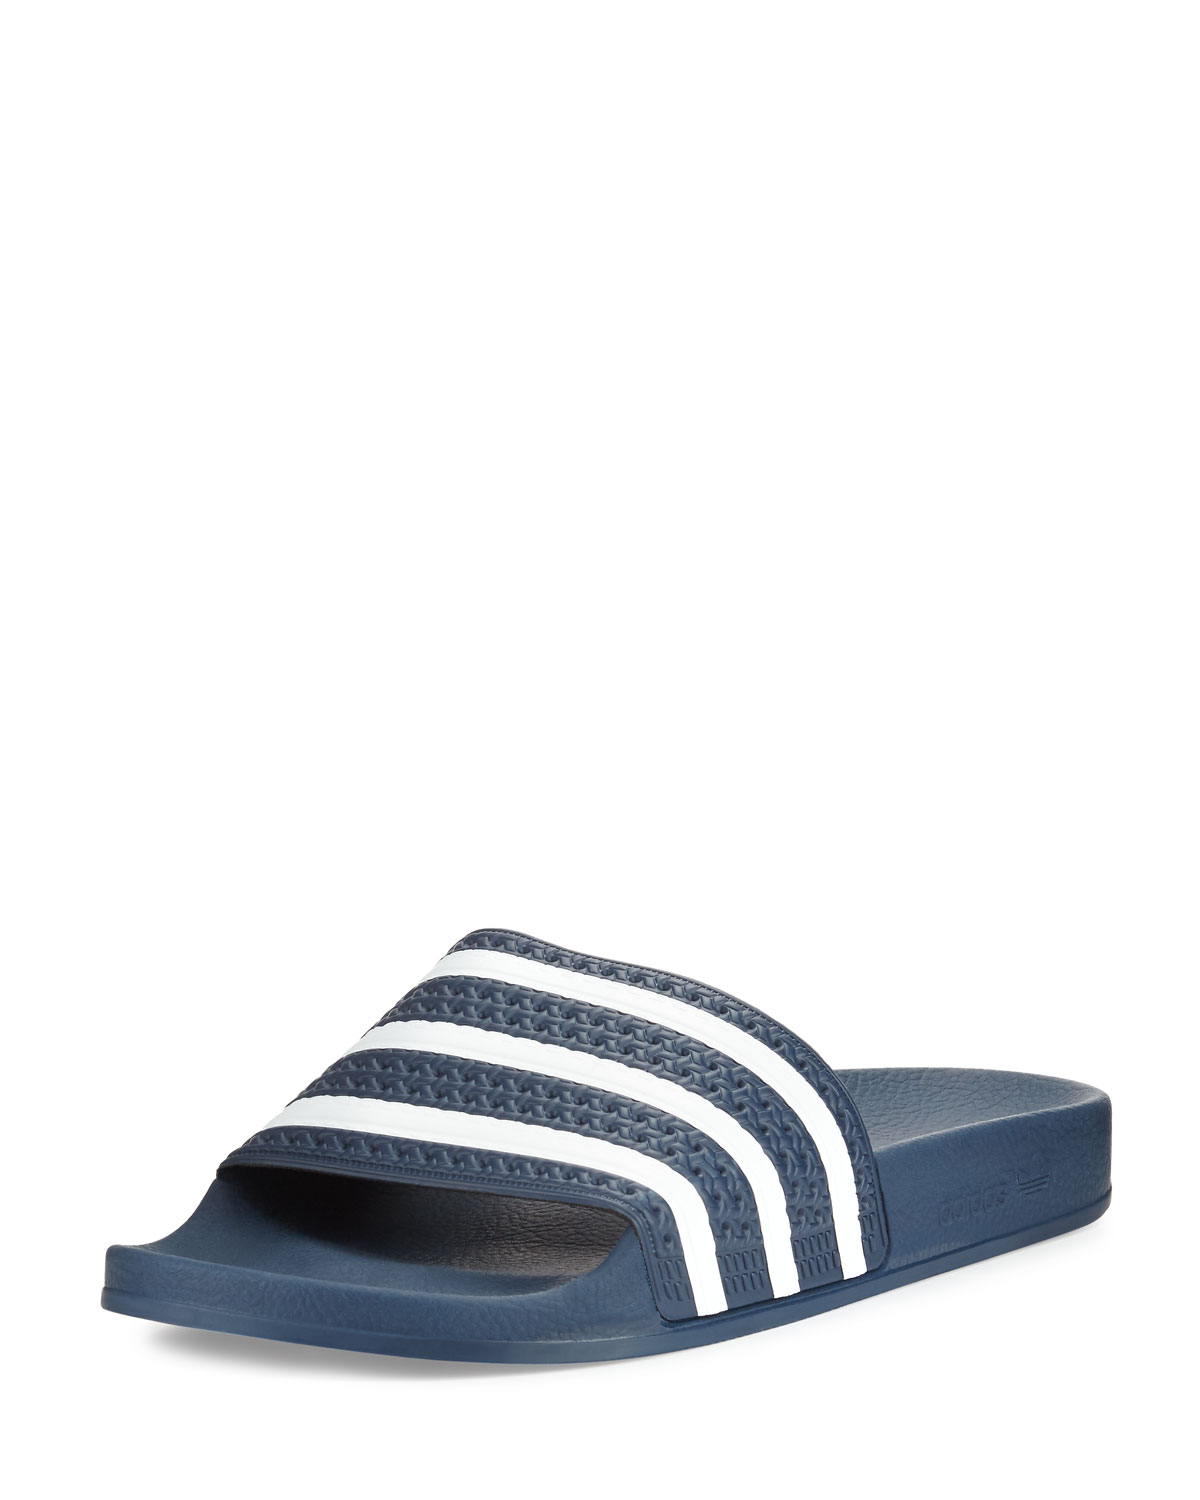 8b2df6a2a6c9 Adidas Men s Adilette 3 Rubber Slide